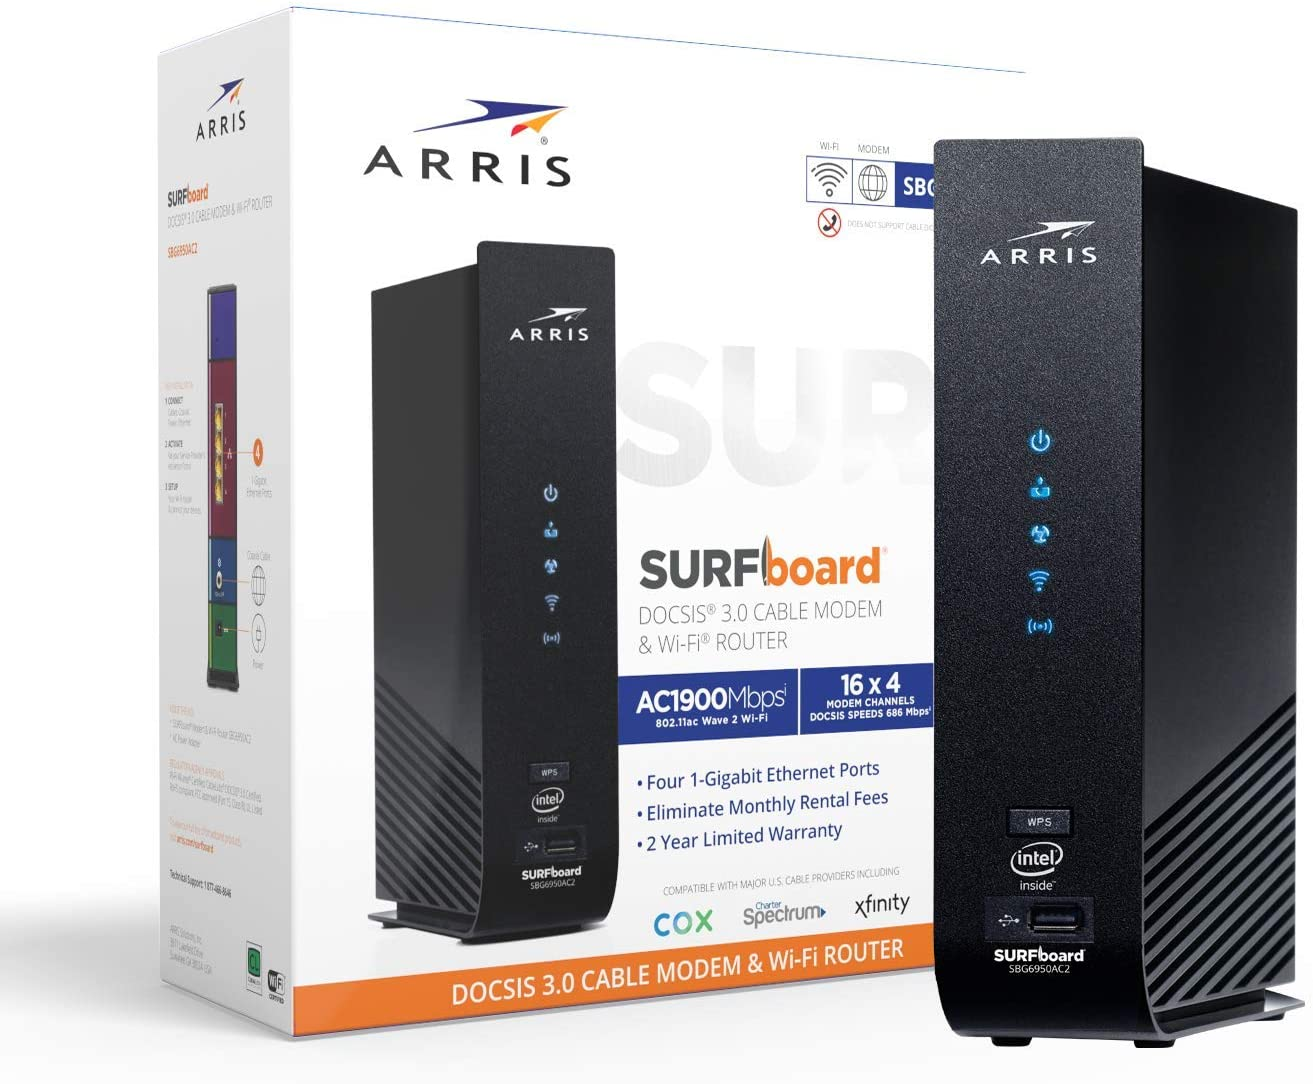 Arris Surfboard 16x4 Docsis 3 0 Cable Modem Ac1900 Dual Band Wifi Router Approved For Xfinity Comcast Cox Charter And Most Other Cable Internet Providers For Plans Up To 300 Mbps Sbg6950ac2